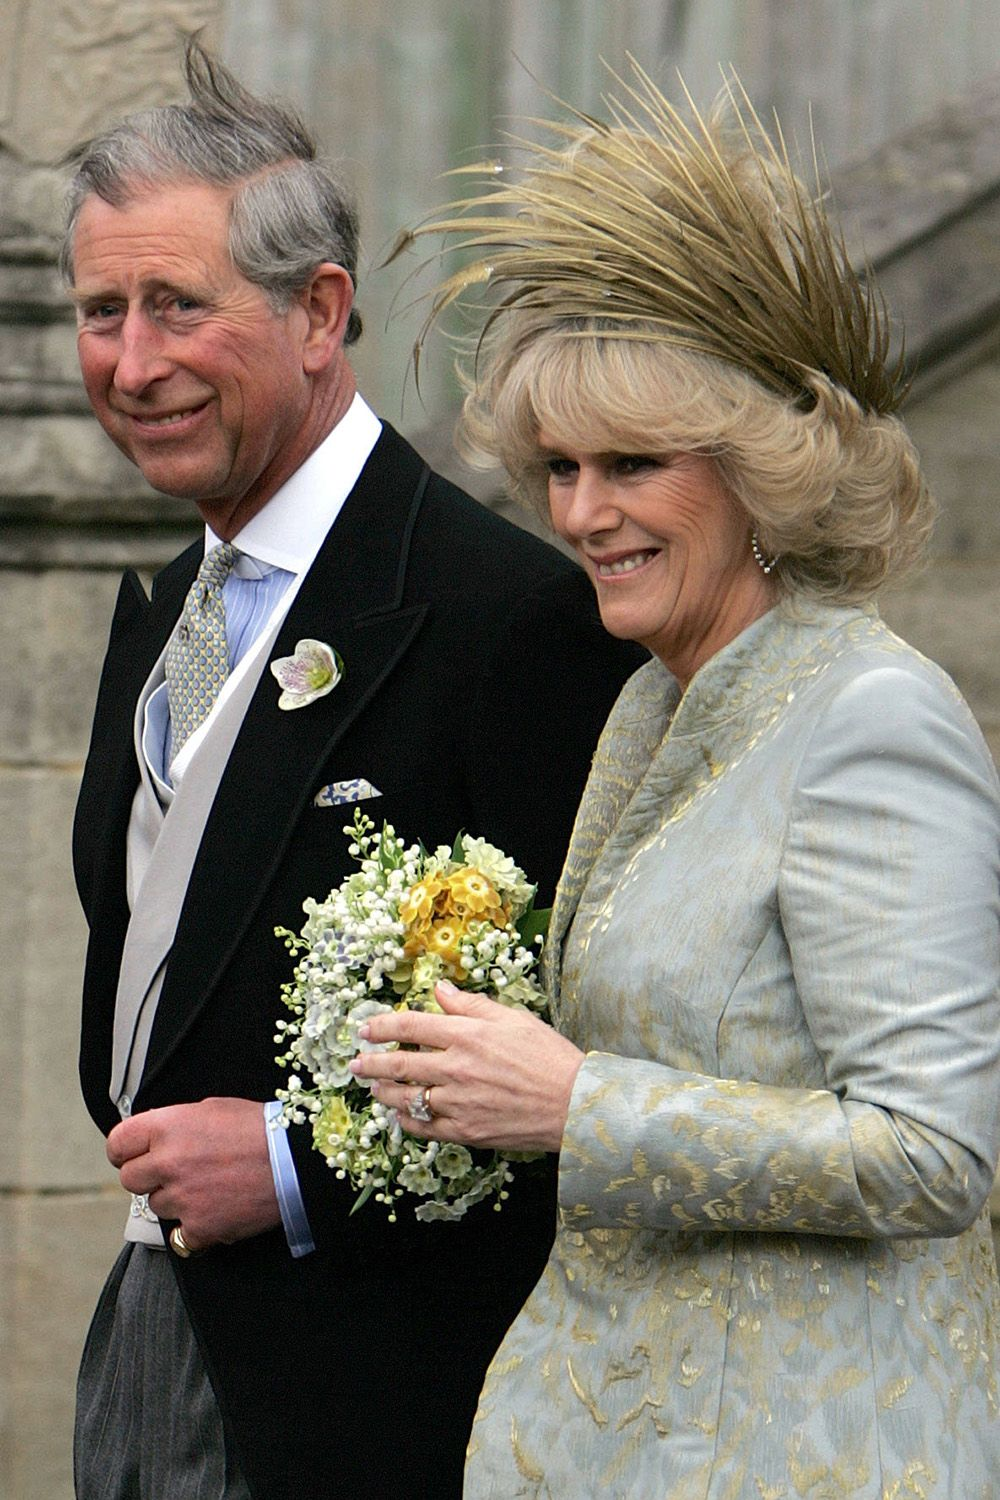 Prince Charles and Camilla Parker Bowles's Whole Thing